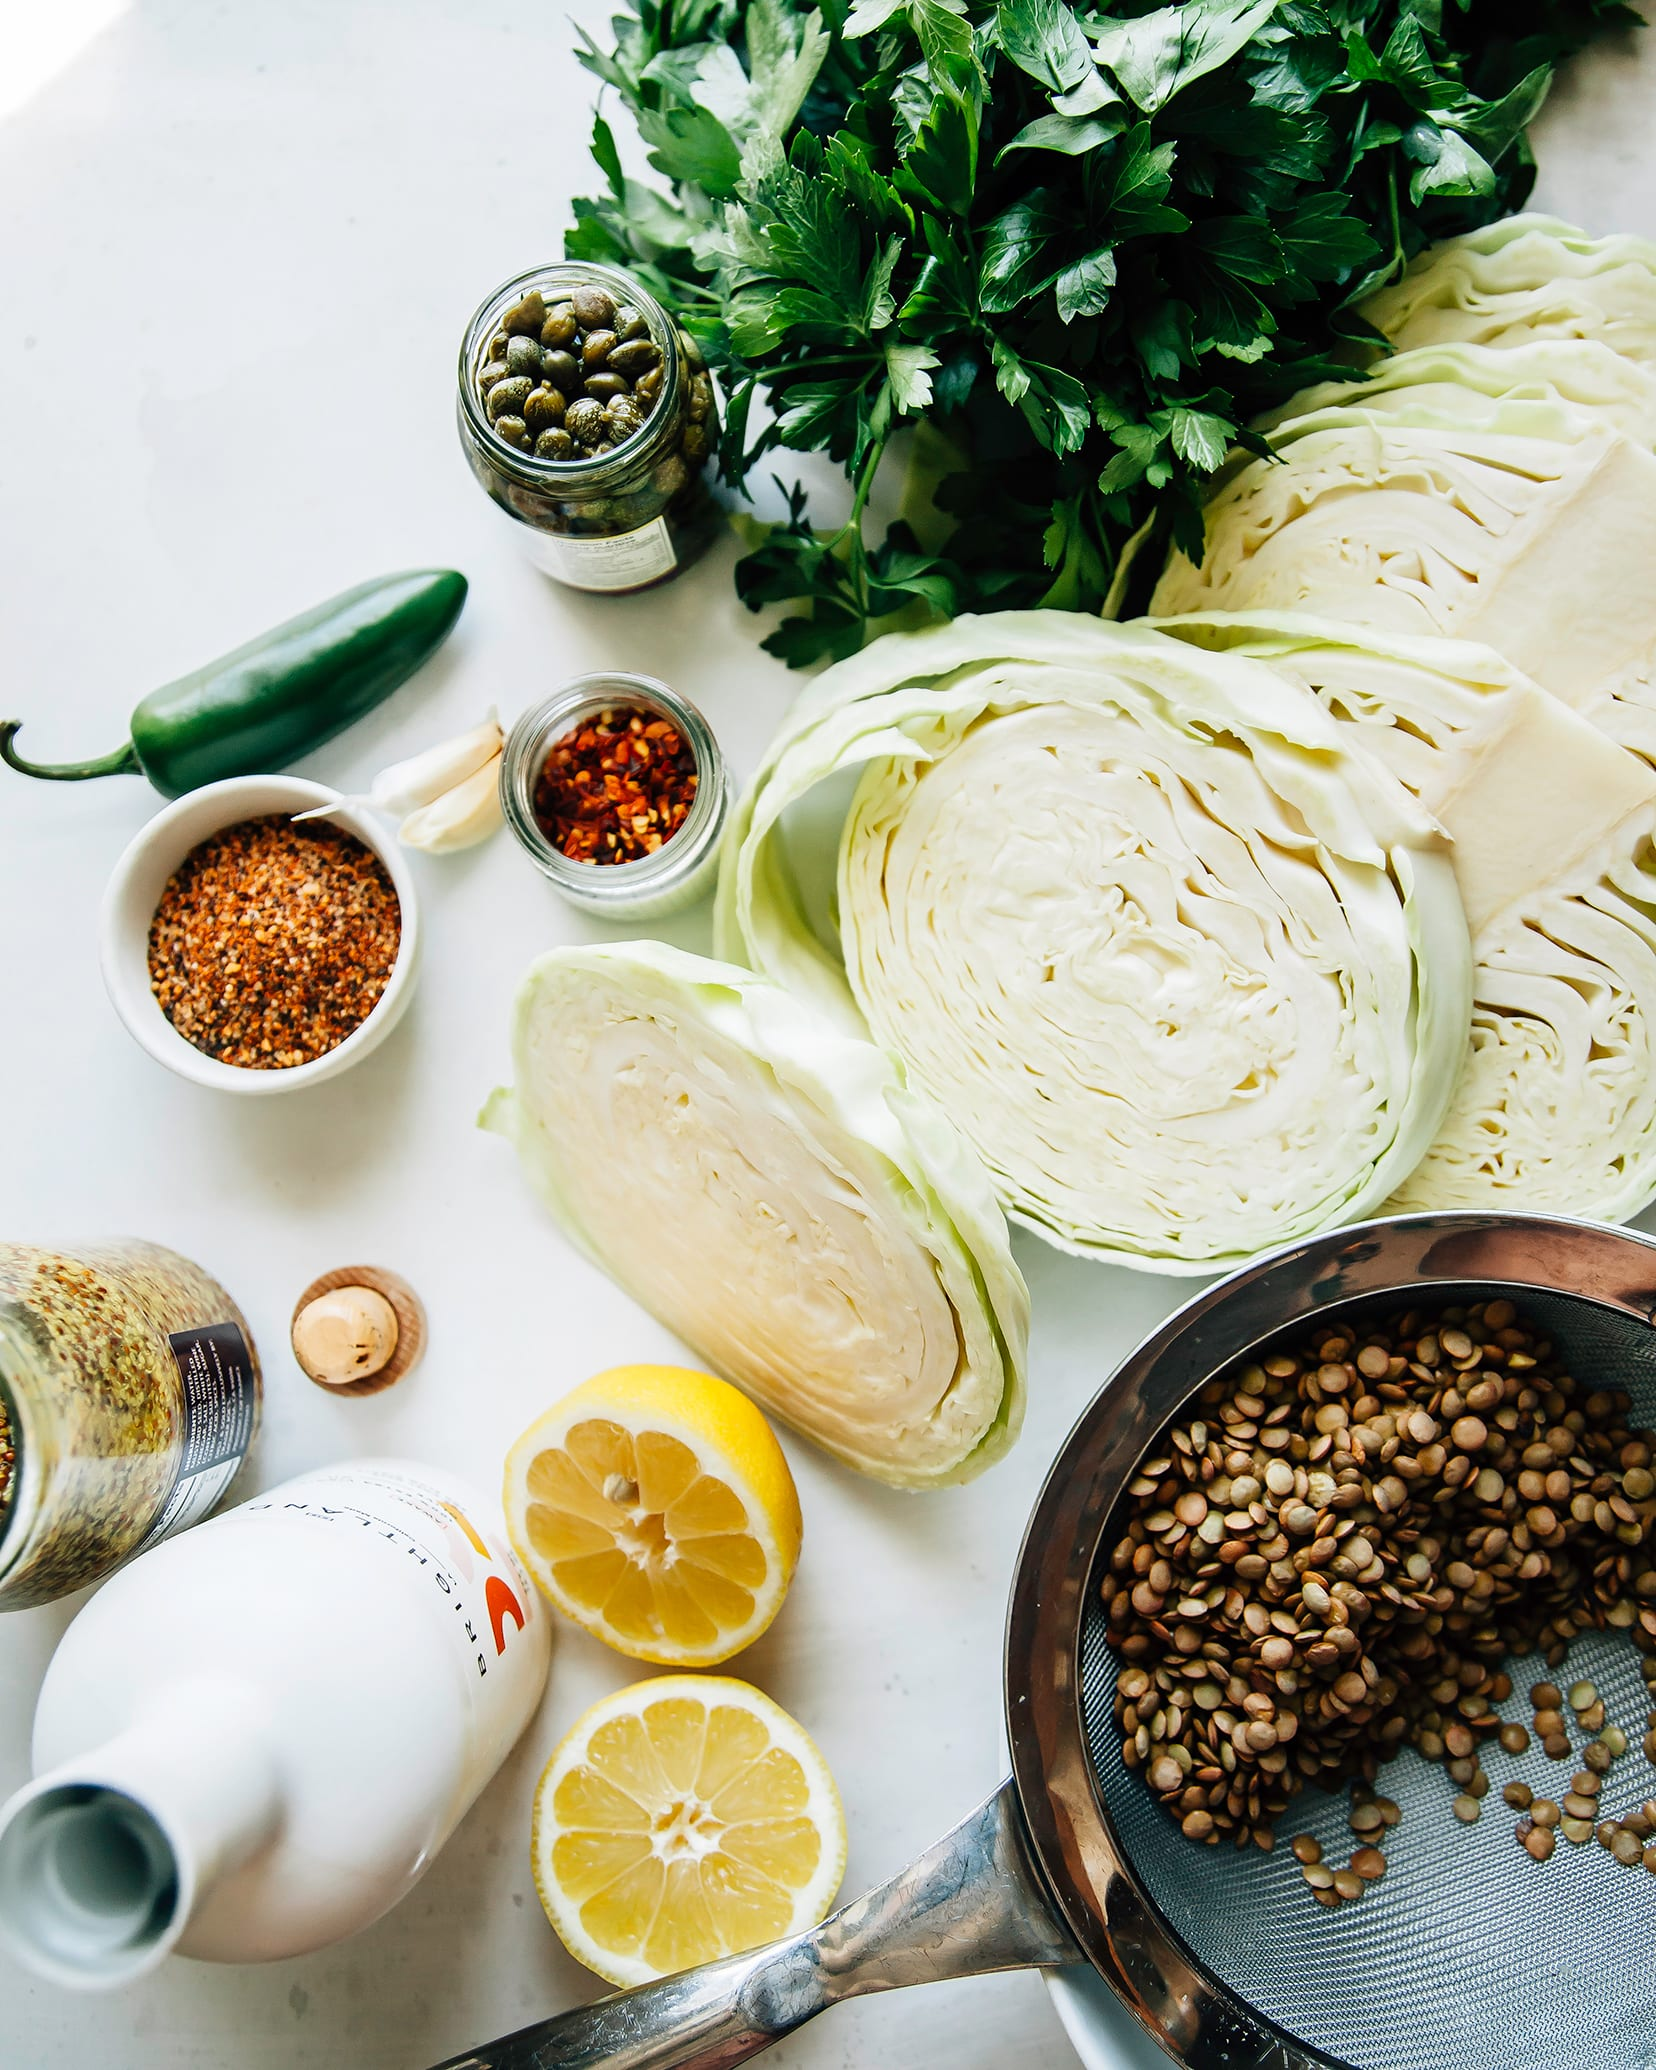 Image taken from overhead shows ingredients for a grilled cabbage dish.